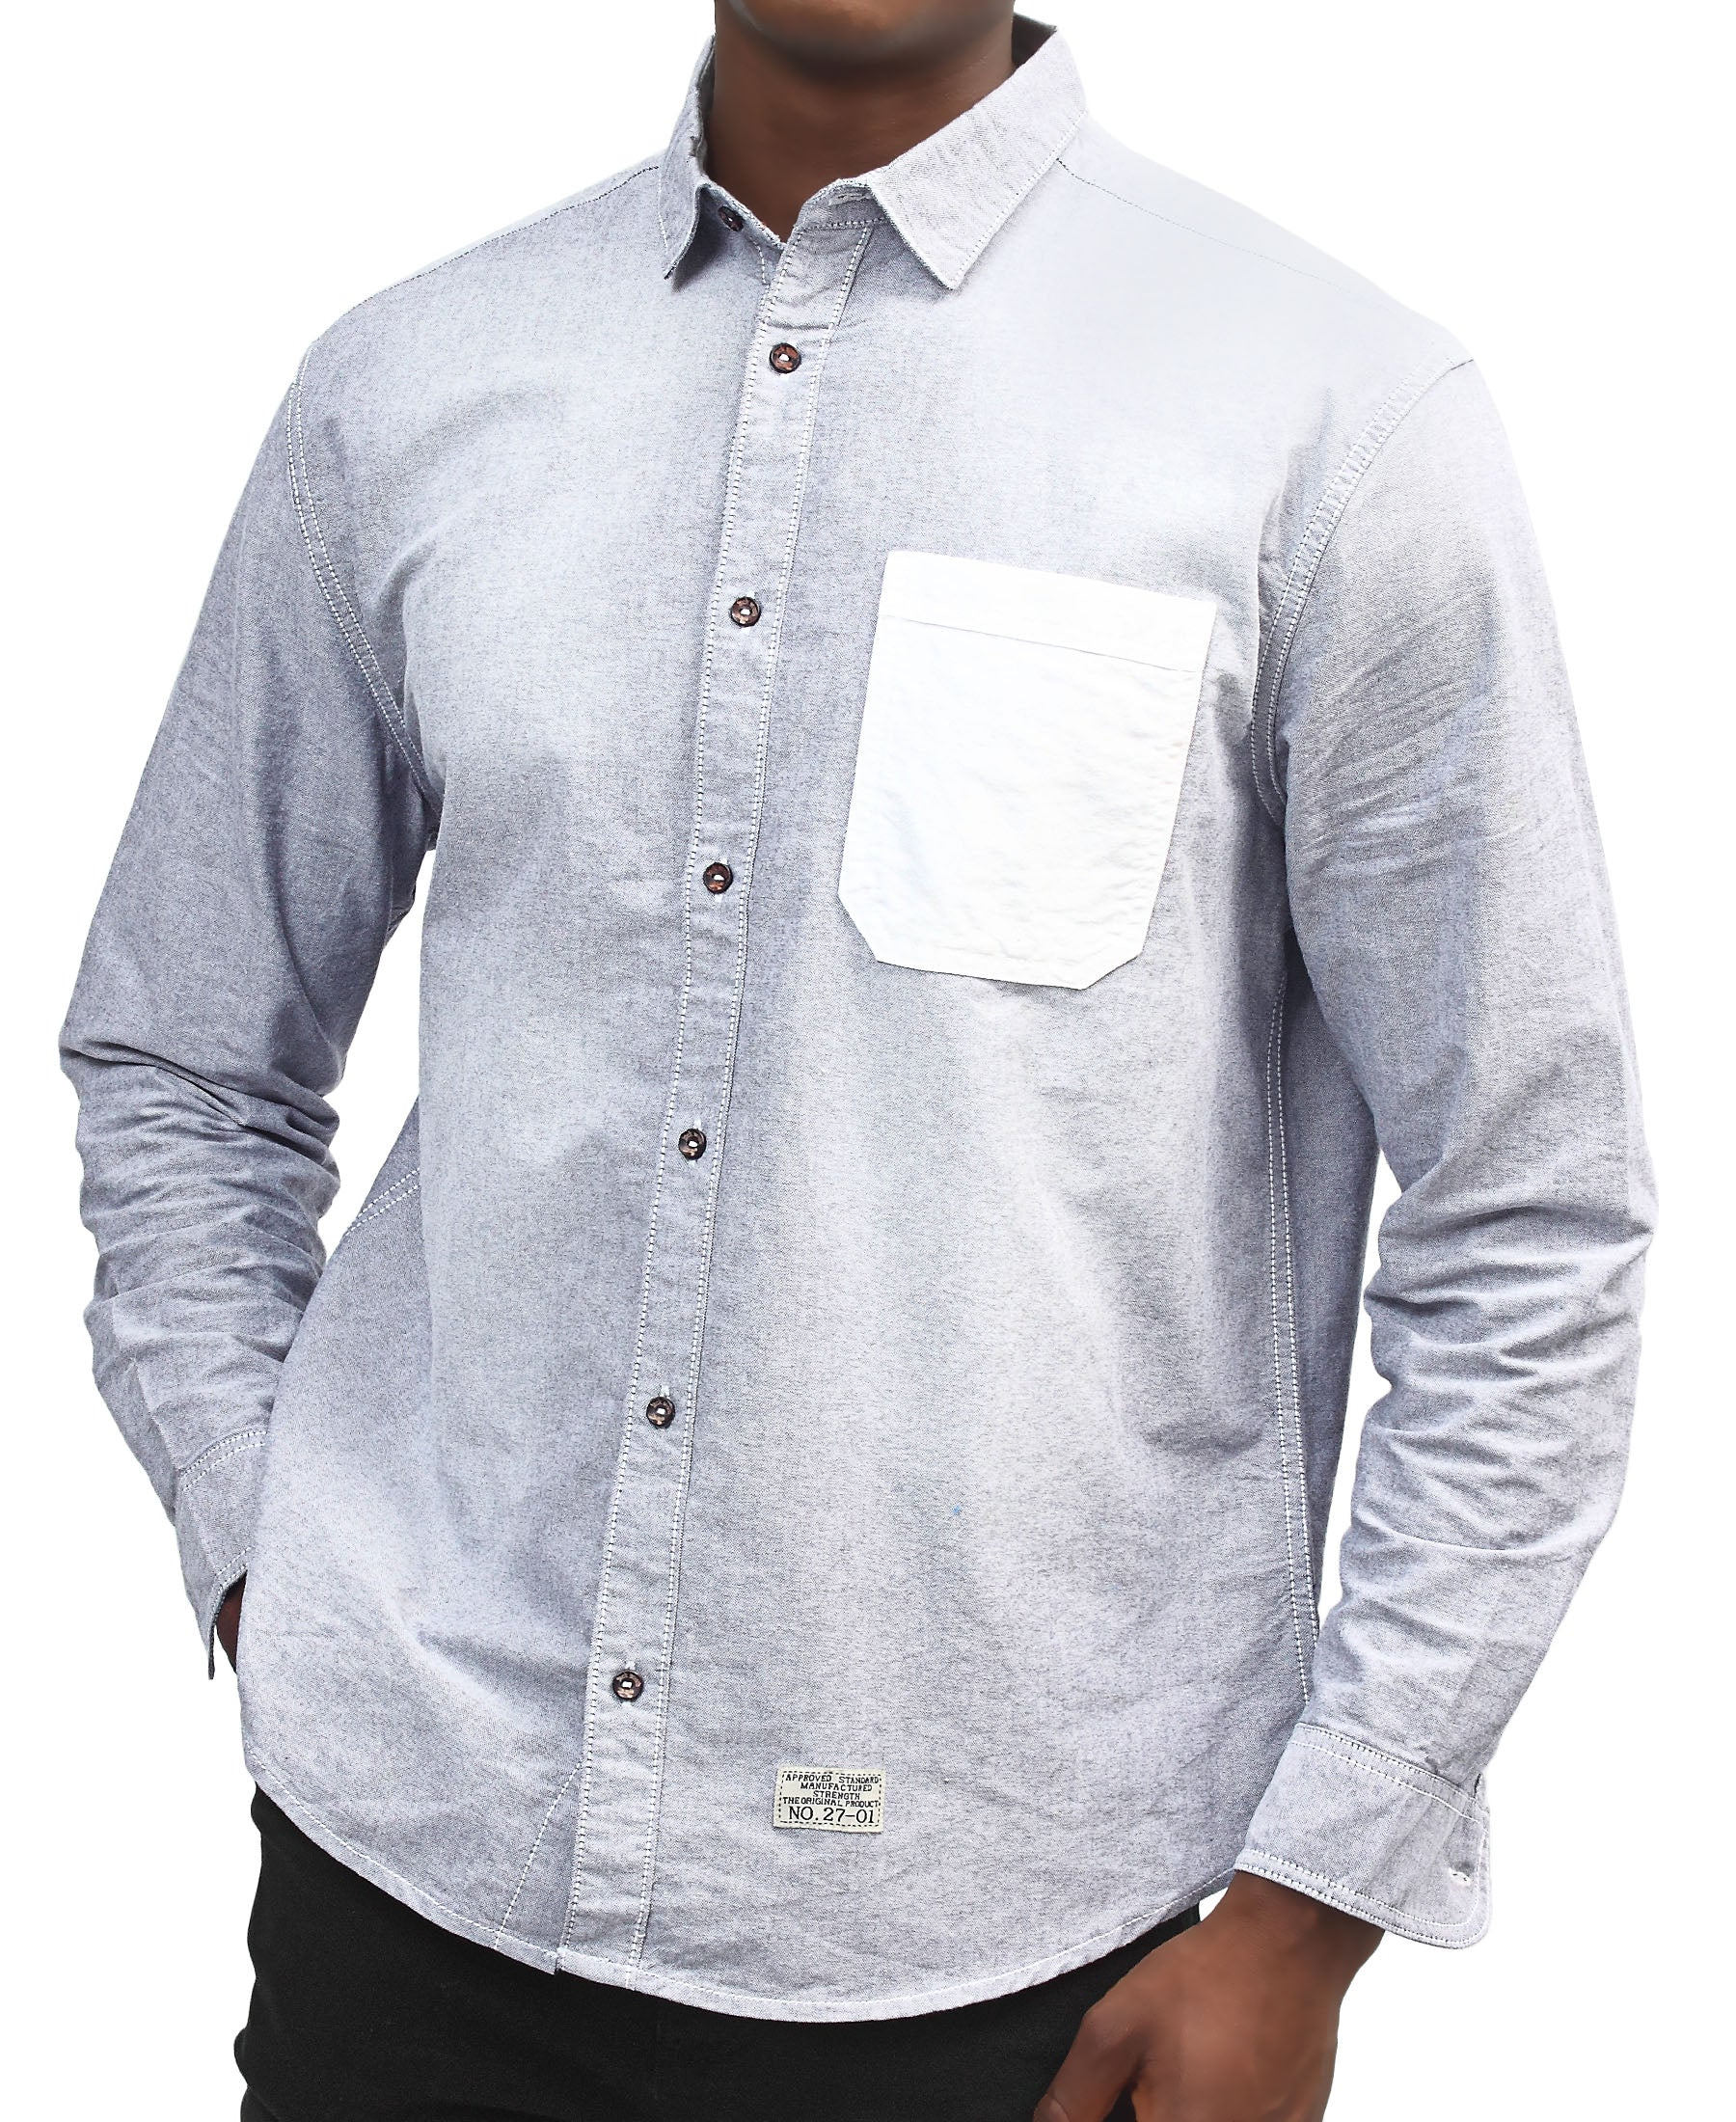 Denim Shirt - Navy